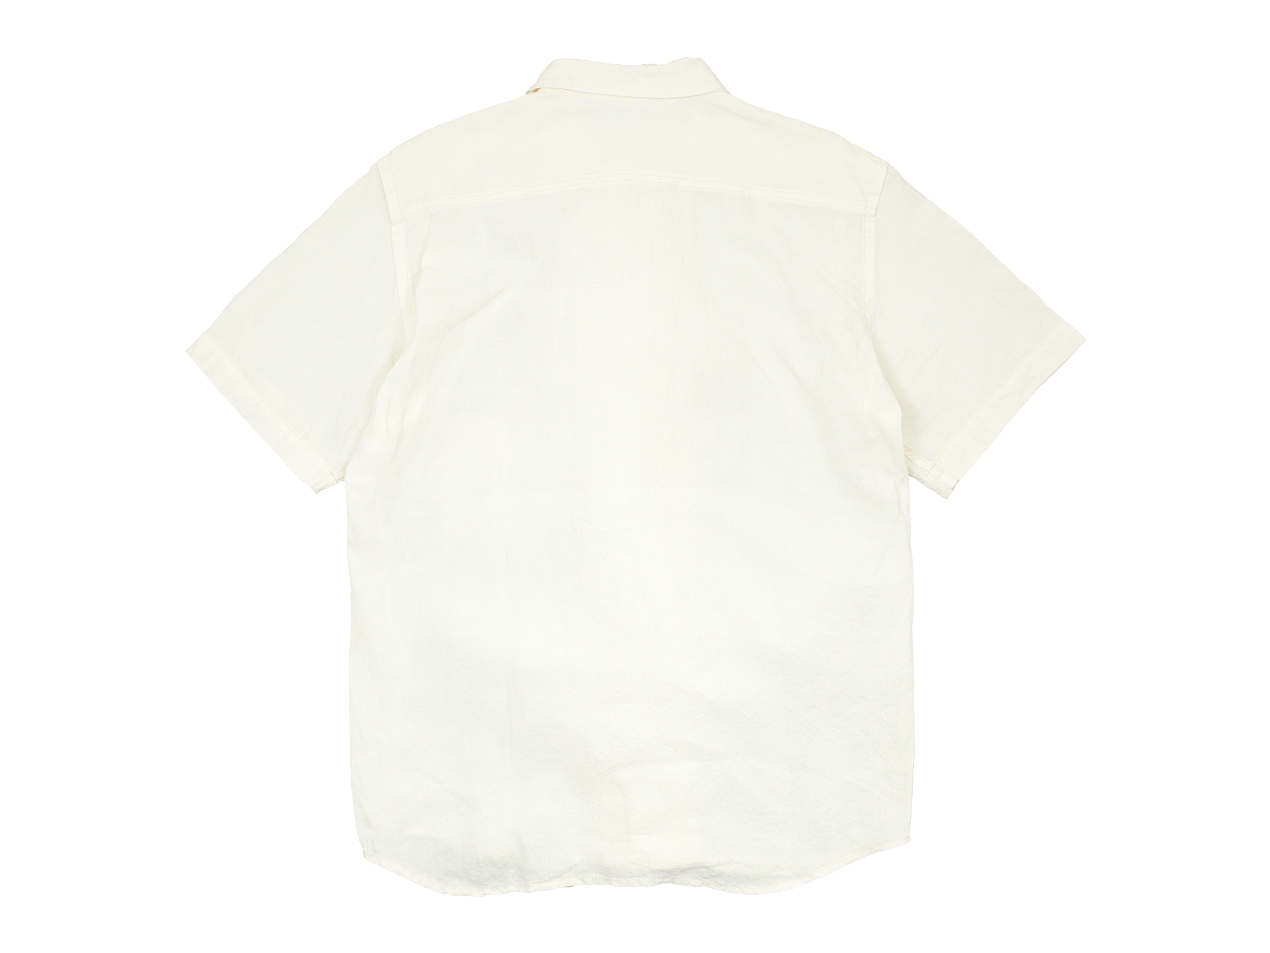 【別注】 TATAMIZE DOUBLE BRESTED LINEN S/S SHIRTS OFF WHITE